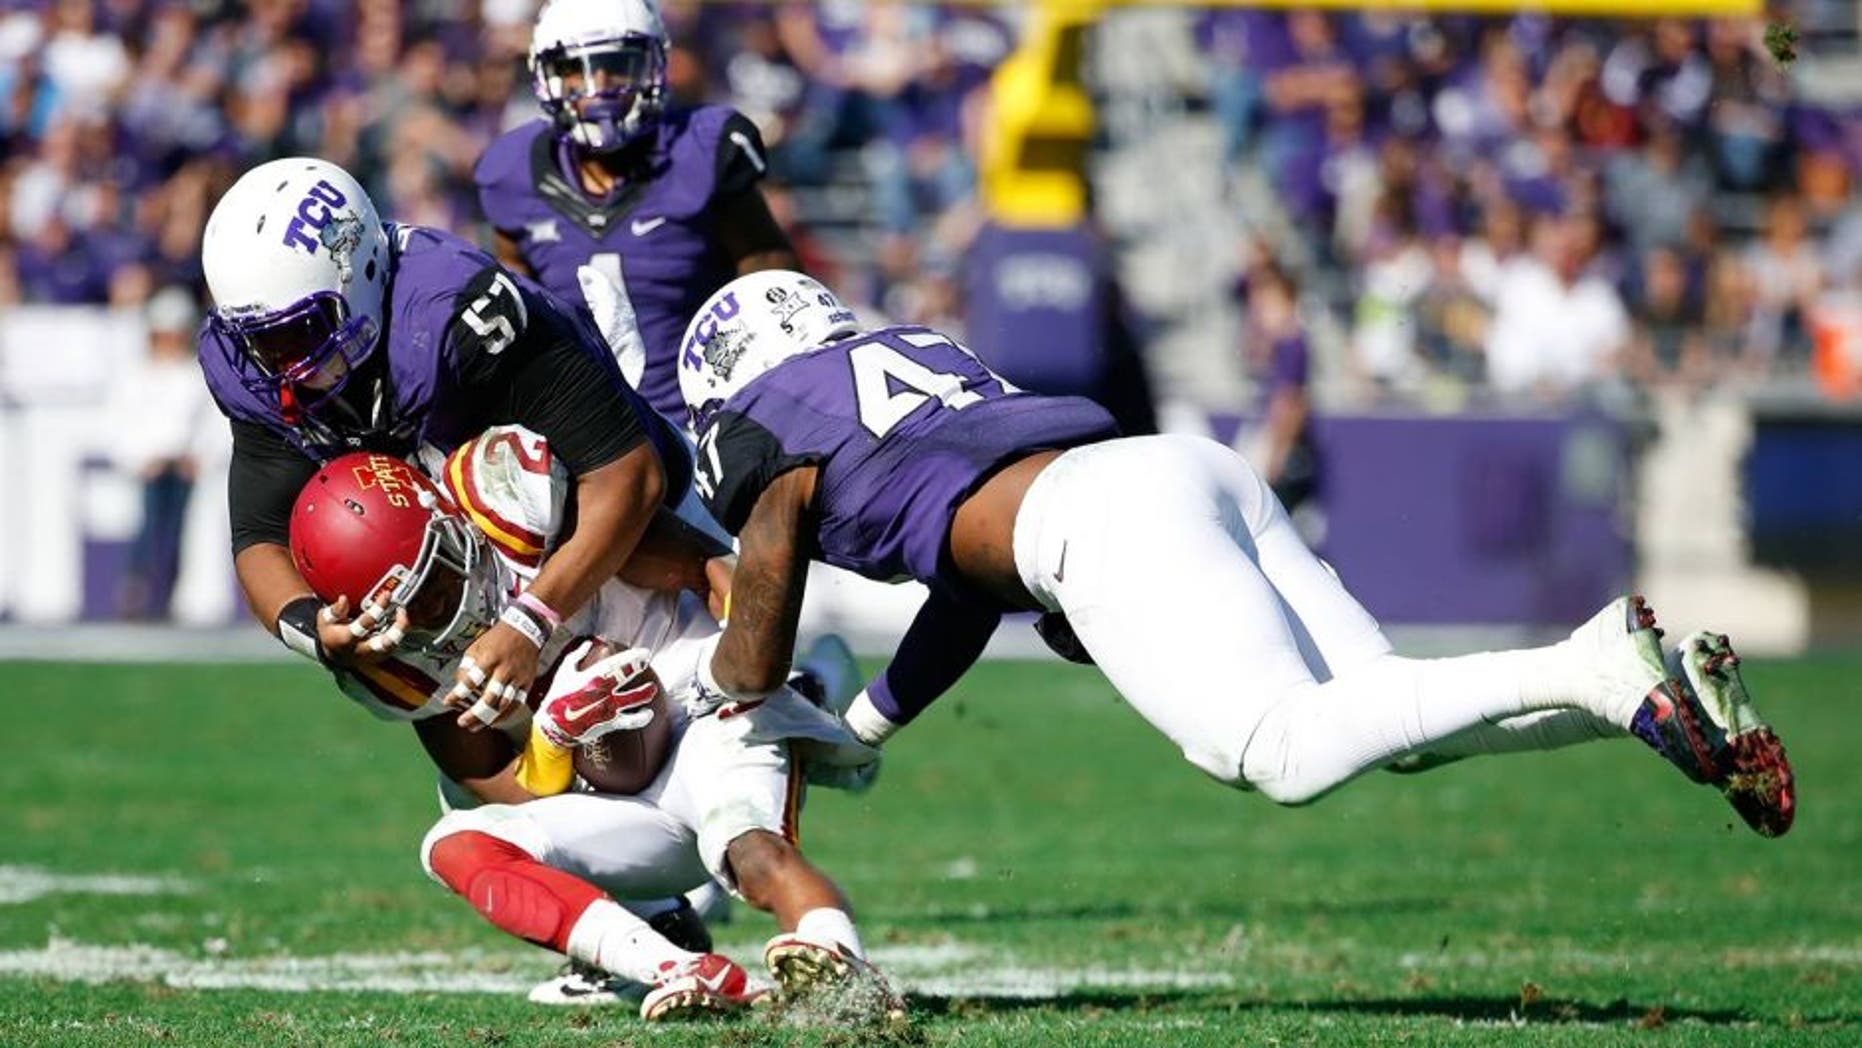 Dec 6, 2014; Fort Worth, TX, USA; TCU Horned Frogs defensive tackle Davion Pierson (57) and linebacker Paul Dawson (47) tackle Iowa State Cyclones running back Aaron Wimberly (2) during the game at Amon G. Carter Stadium. Mandatory Credit: Kevin Jairaj-USA TODAY Sports